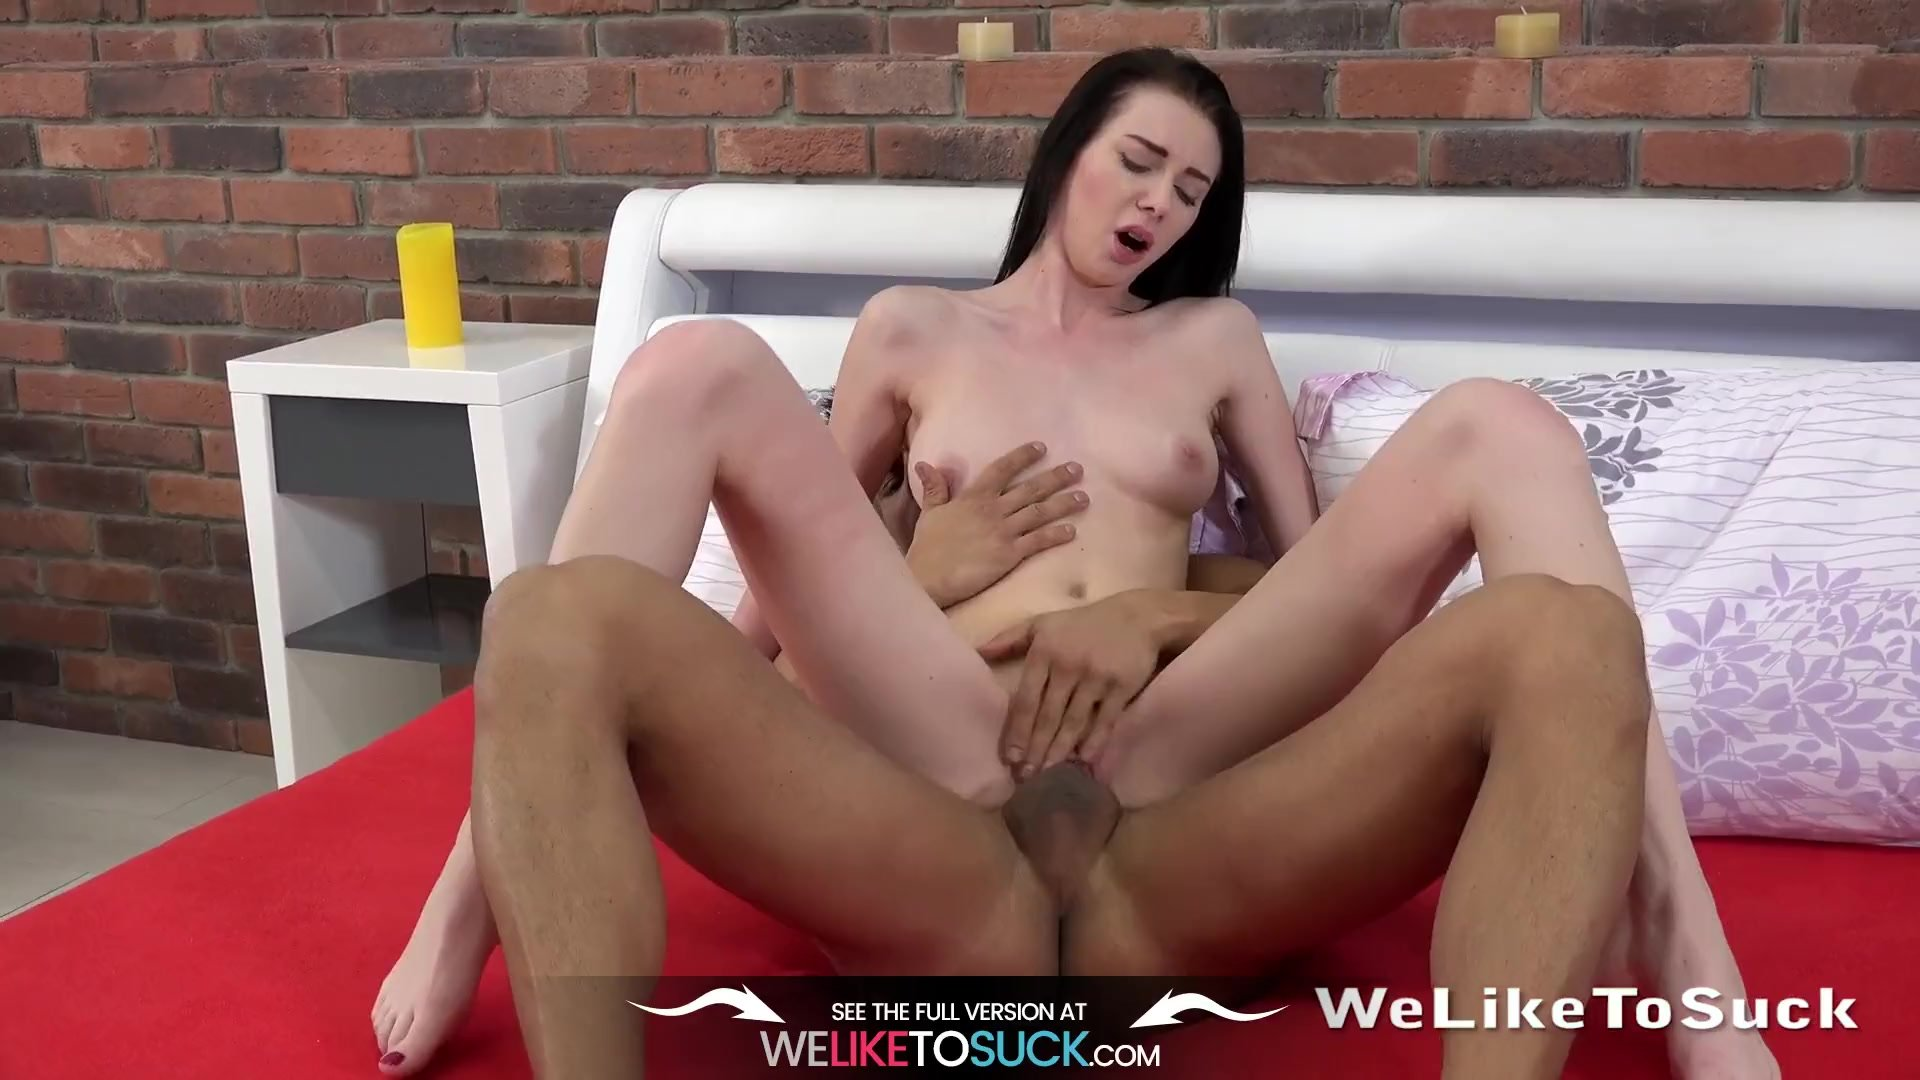 Blowjob - Liz Heaven sucks cock and takes a facial for We Like to Suck